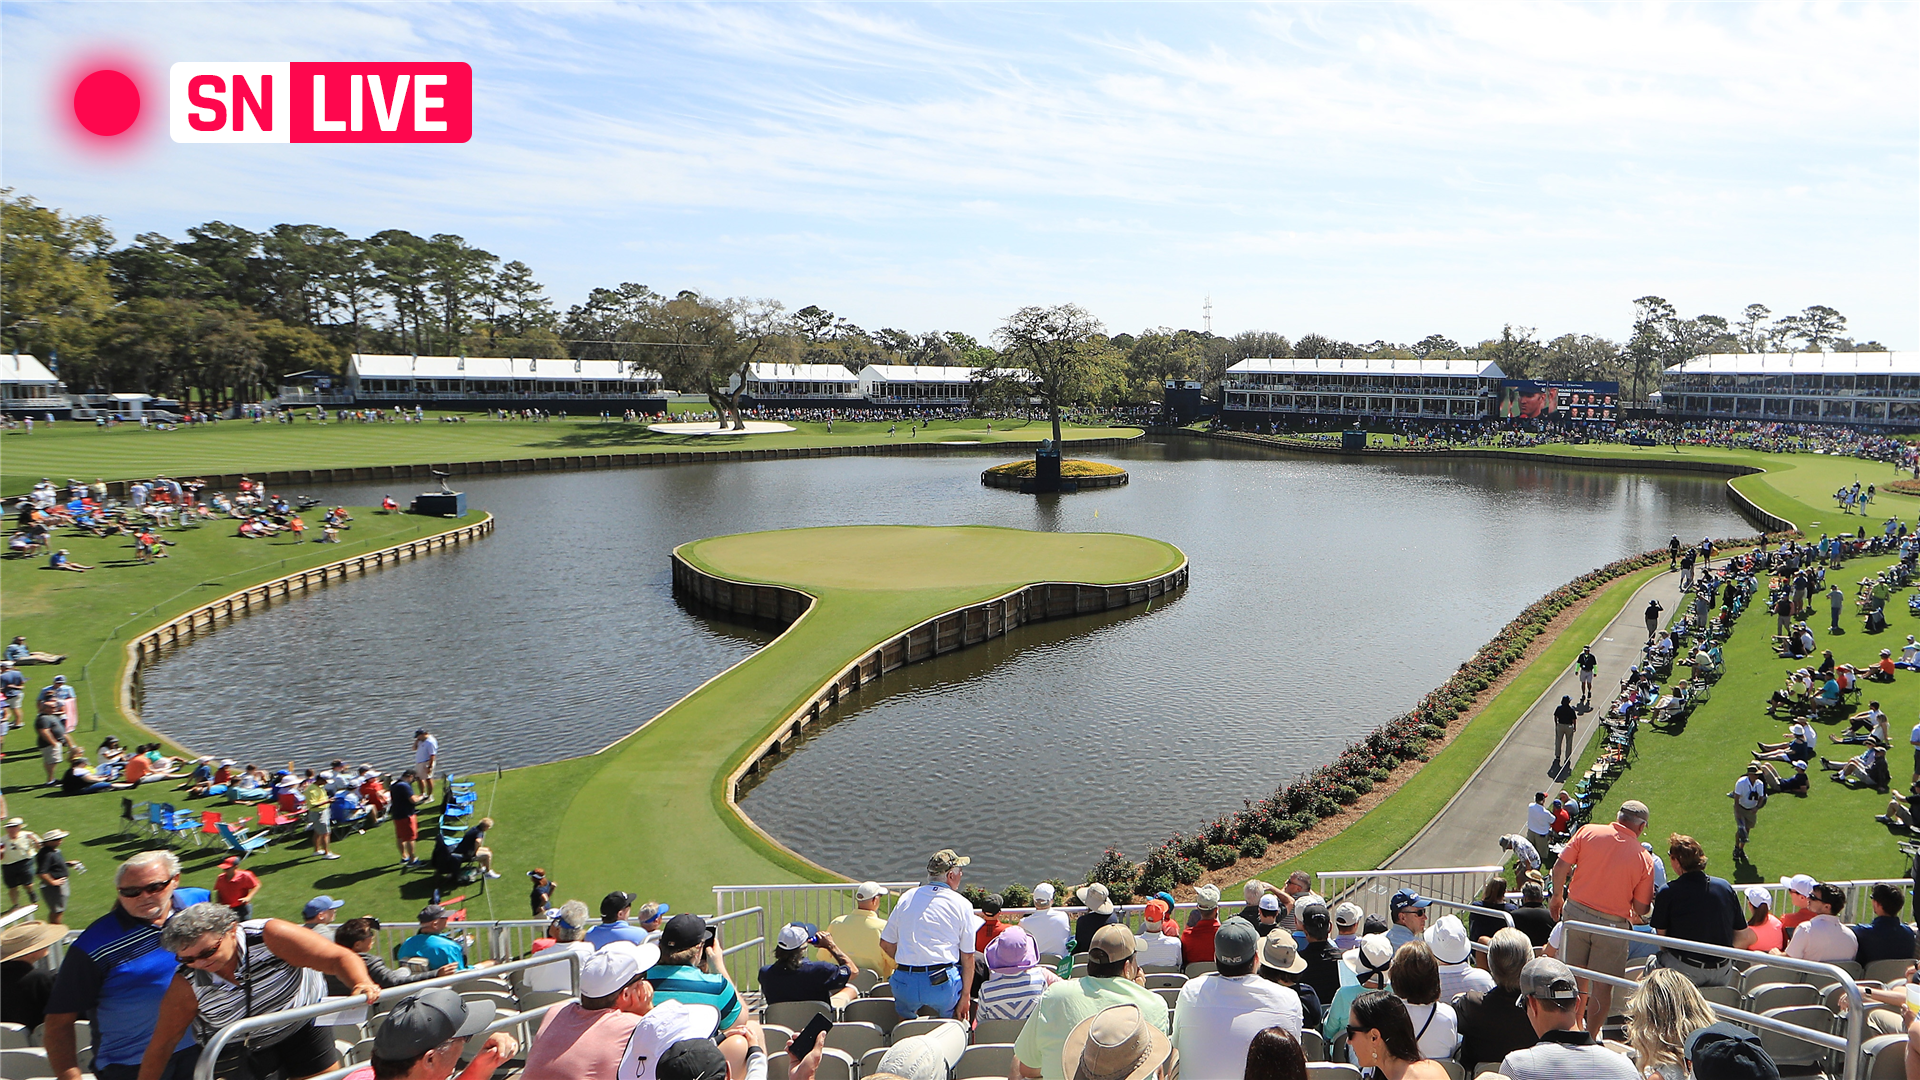 Players Championship leaderboard 2020: Live golf scores, results from Round 1 at TPC Sawgrass